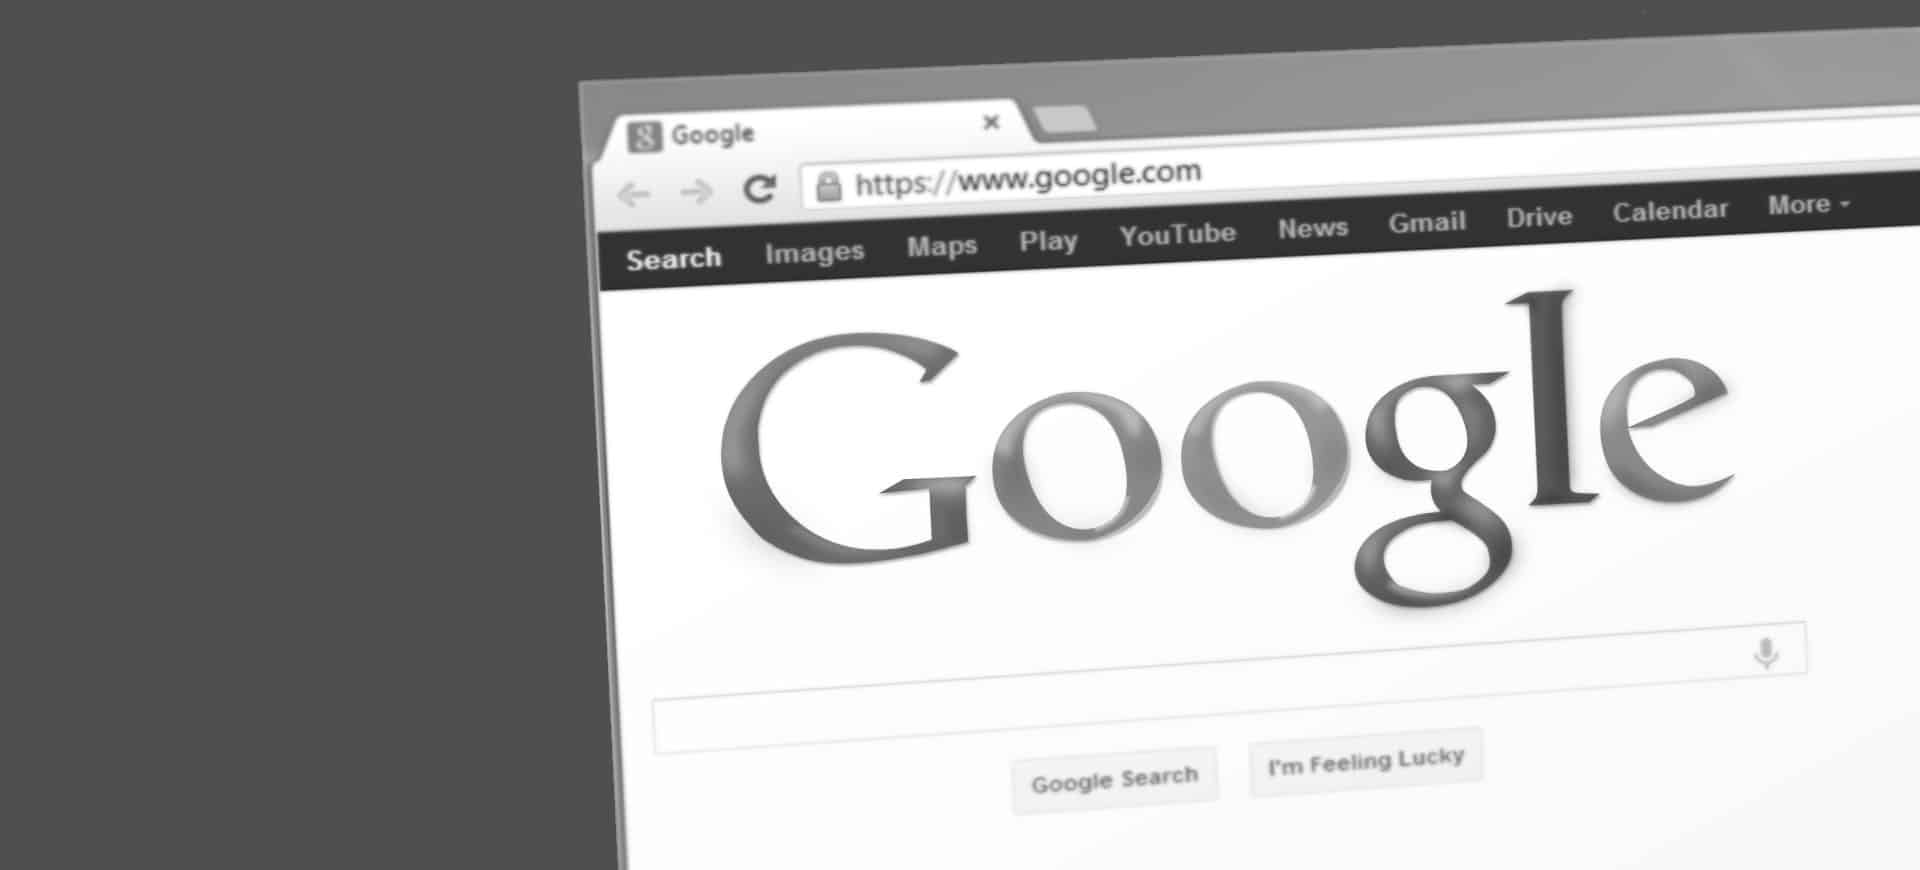 seo audit template free download - Google search engine page on a computer screen